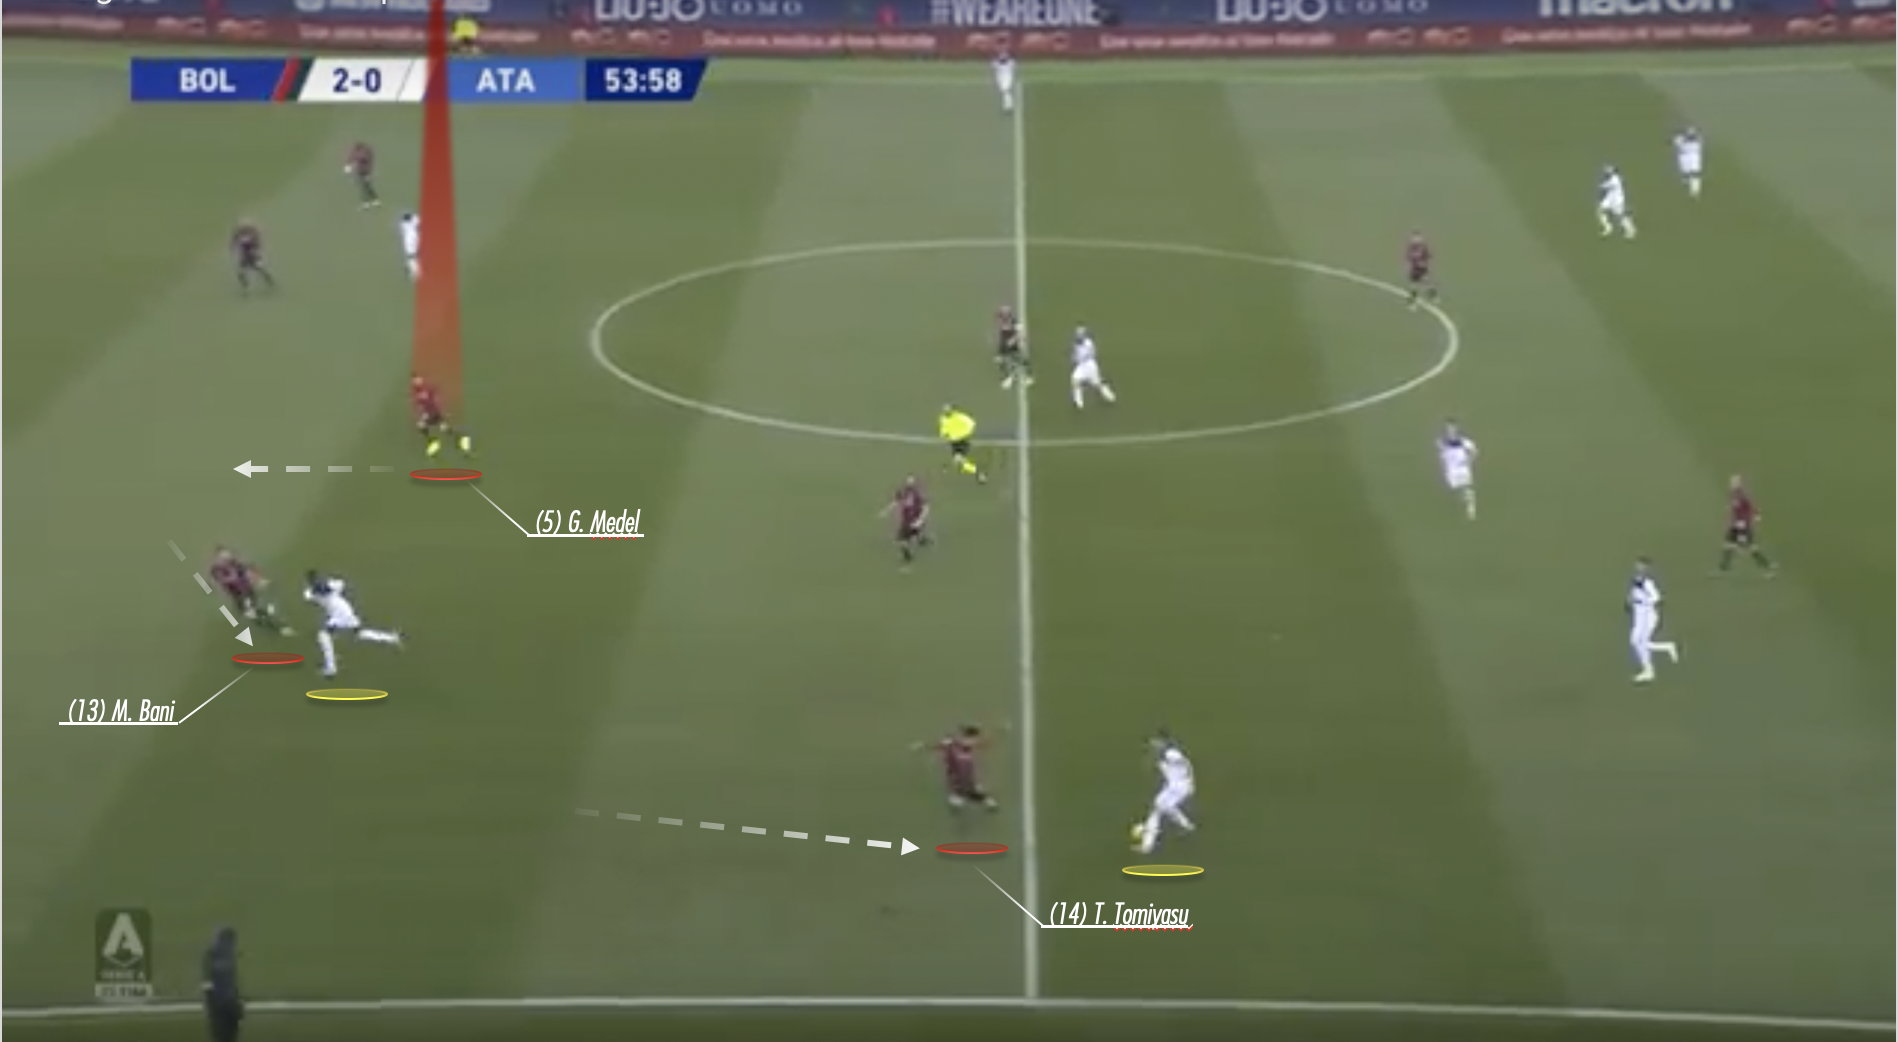 Serie A 2019/20: Bologna vs Atalanta – tactical analysis